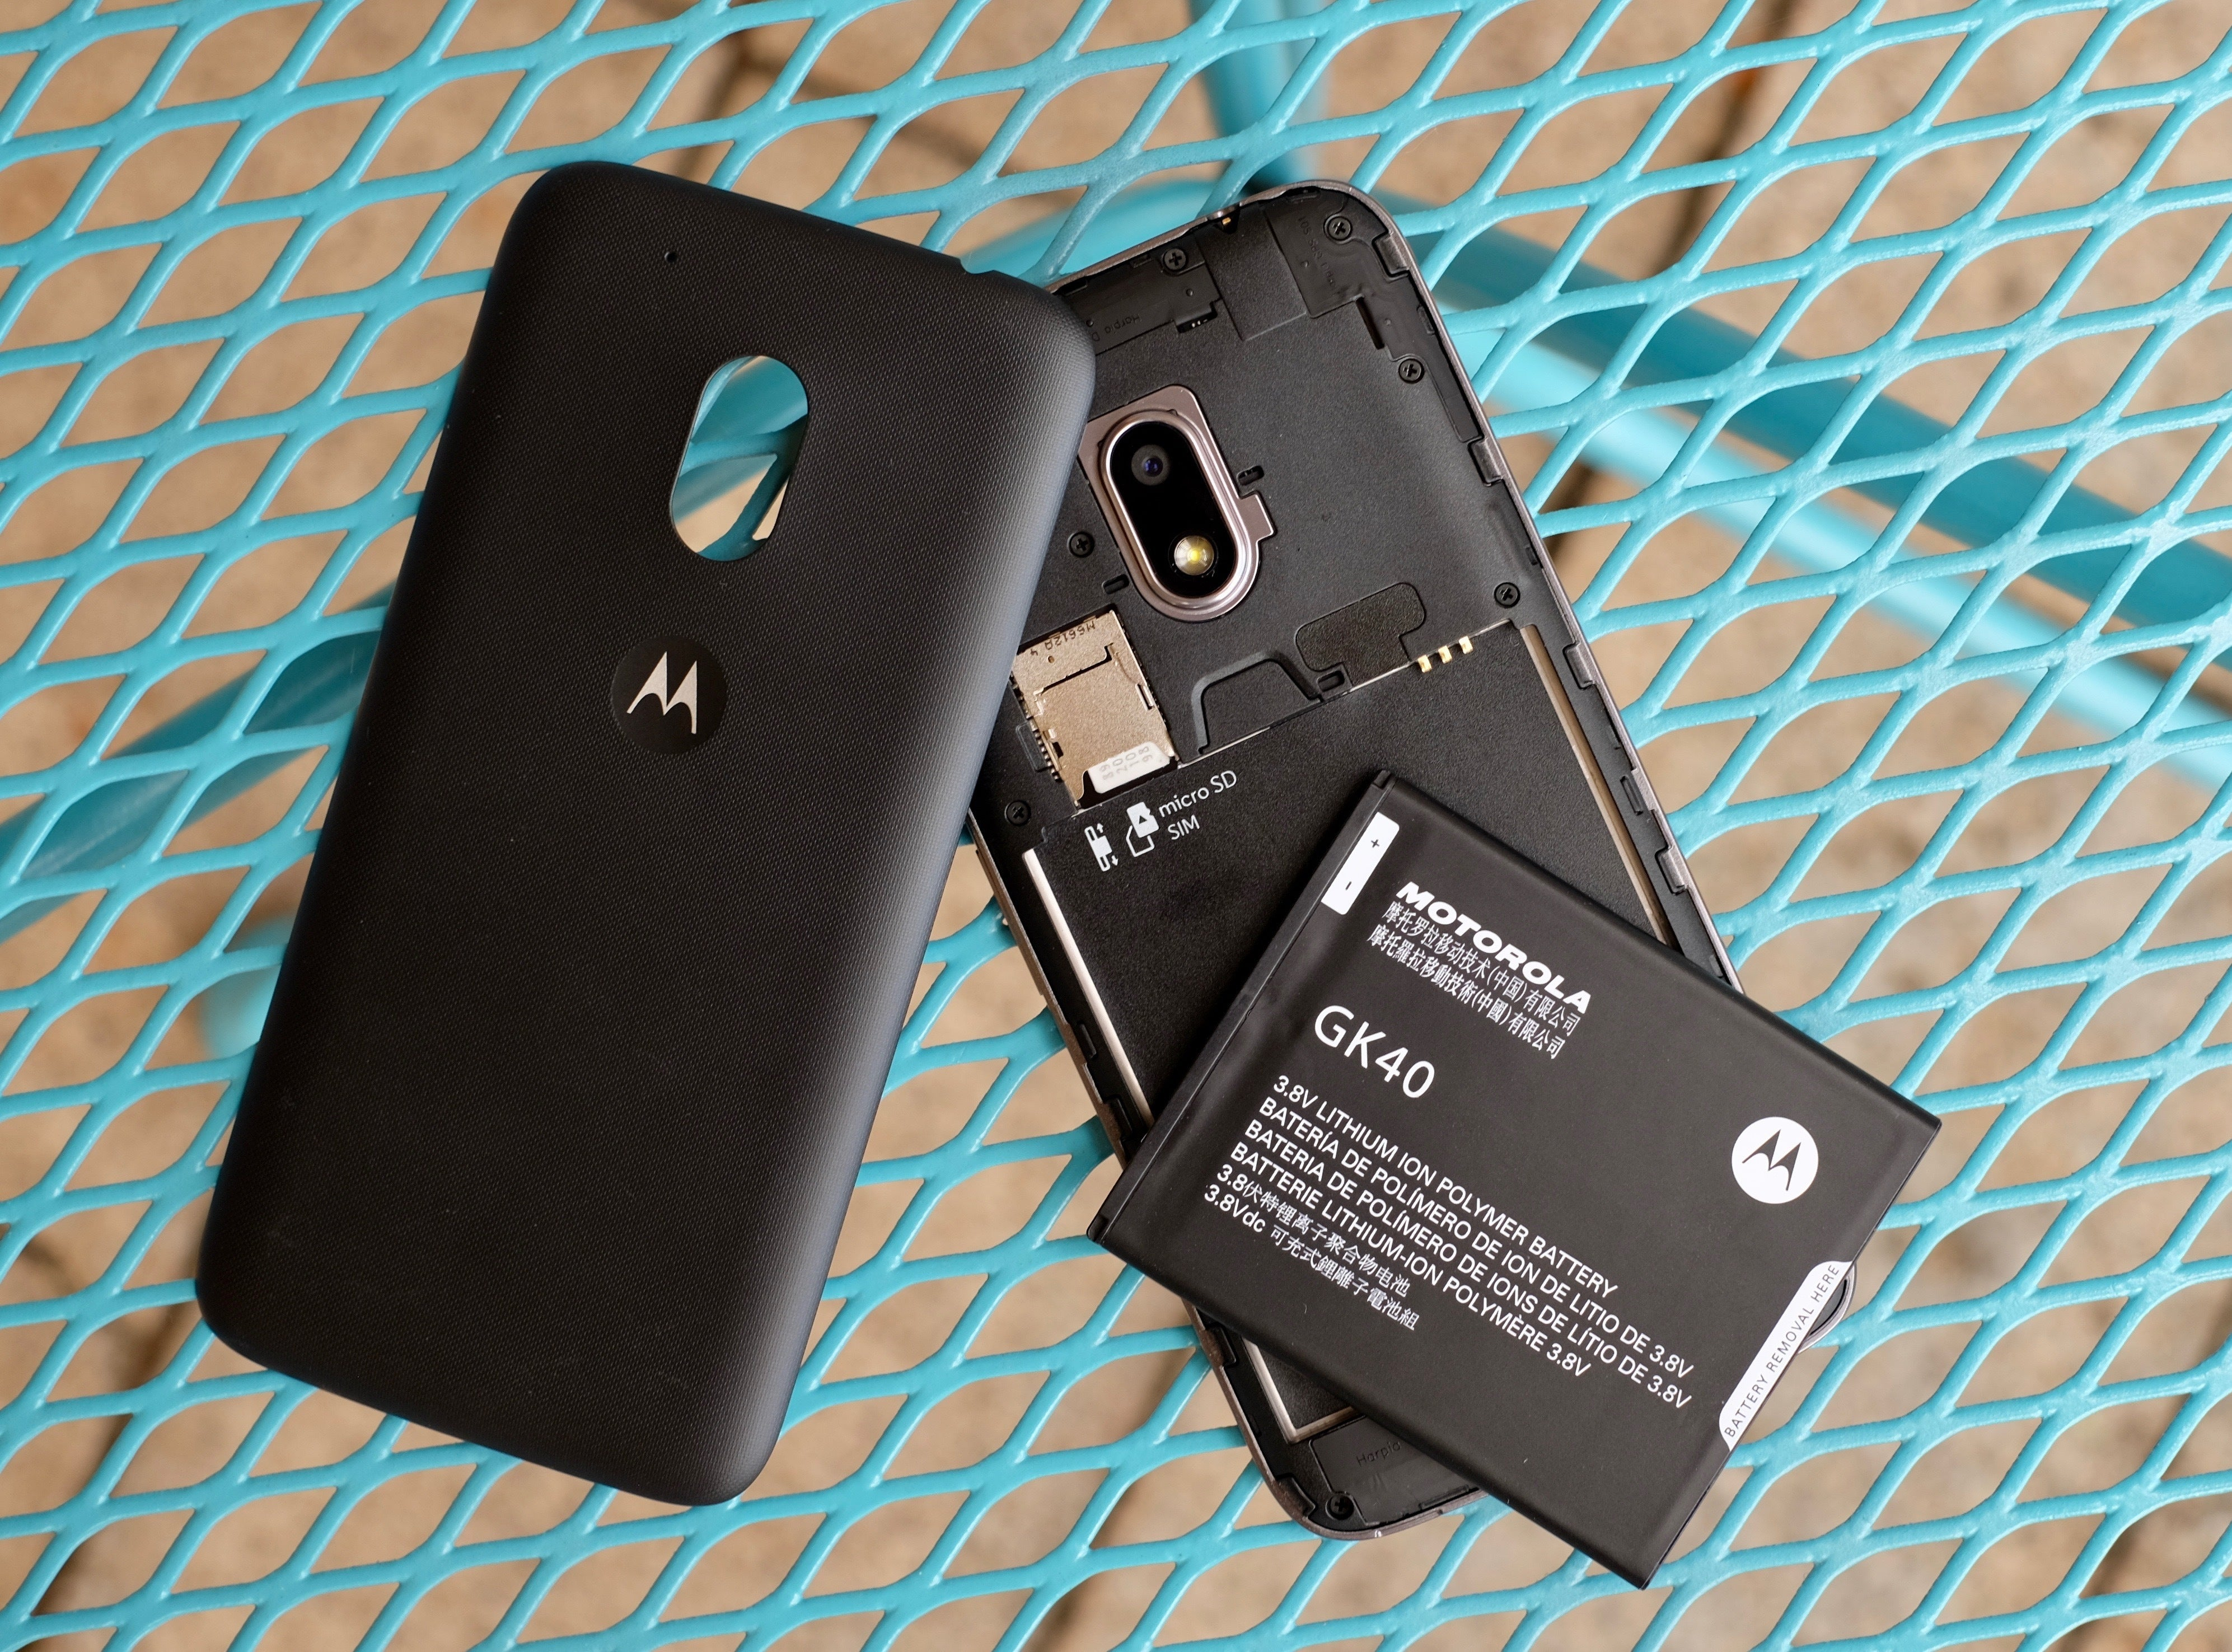 the latest 78751 6a7ed Motorola G4 Play Review: This cheap, flawed smartphone is still good ...